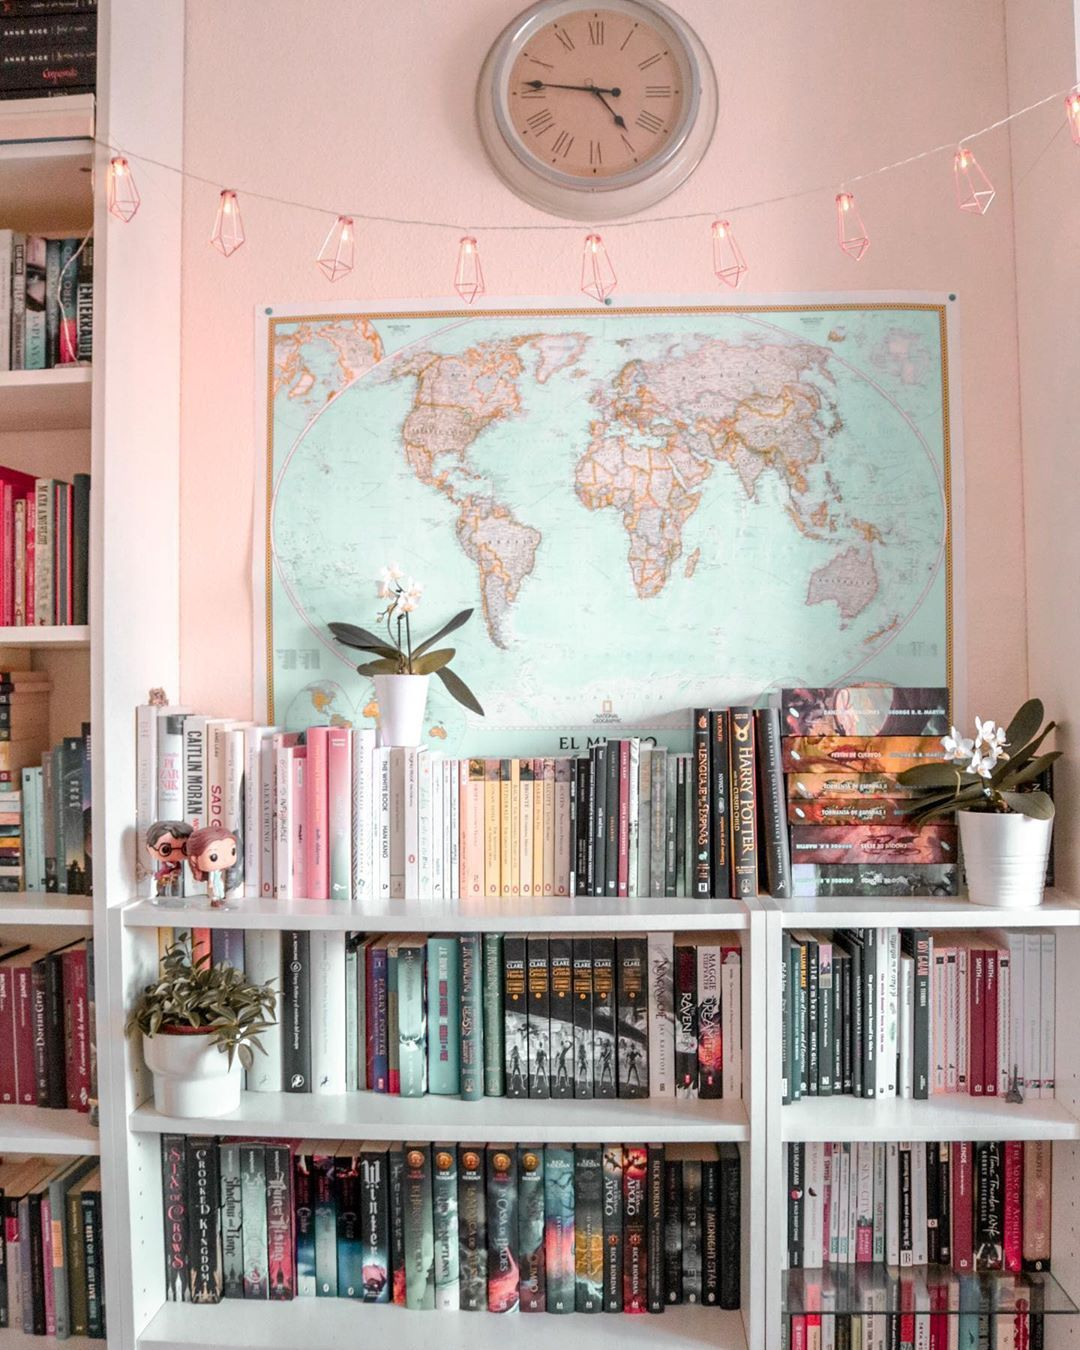 Raquelbookish Buzp4noat9c Nerd Room Decor Aesthetic Room Decor Bookshelves In Bedroom